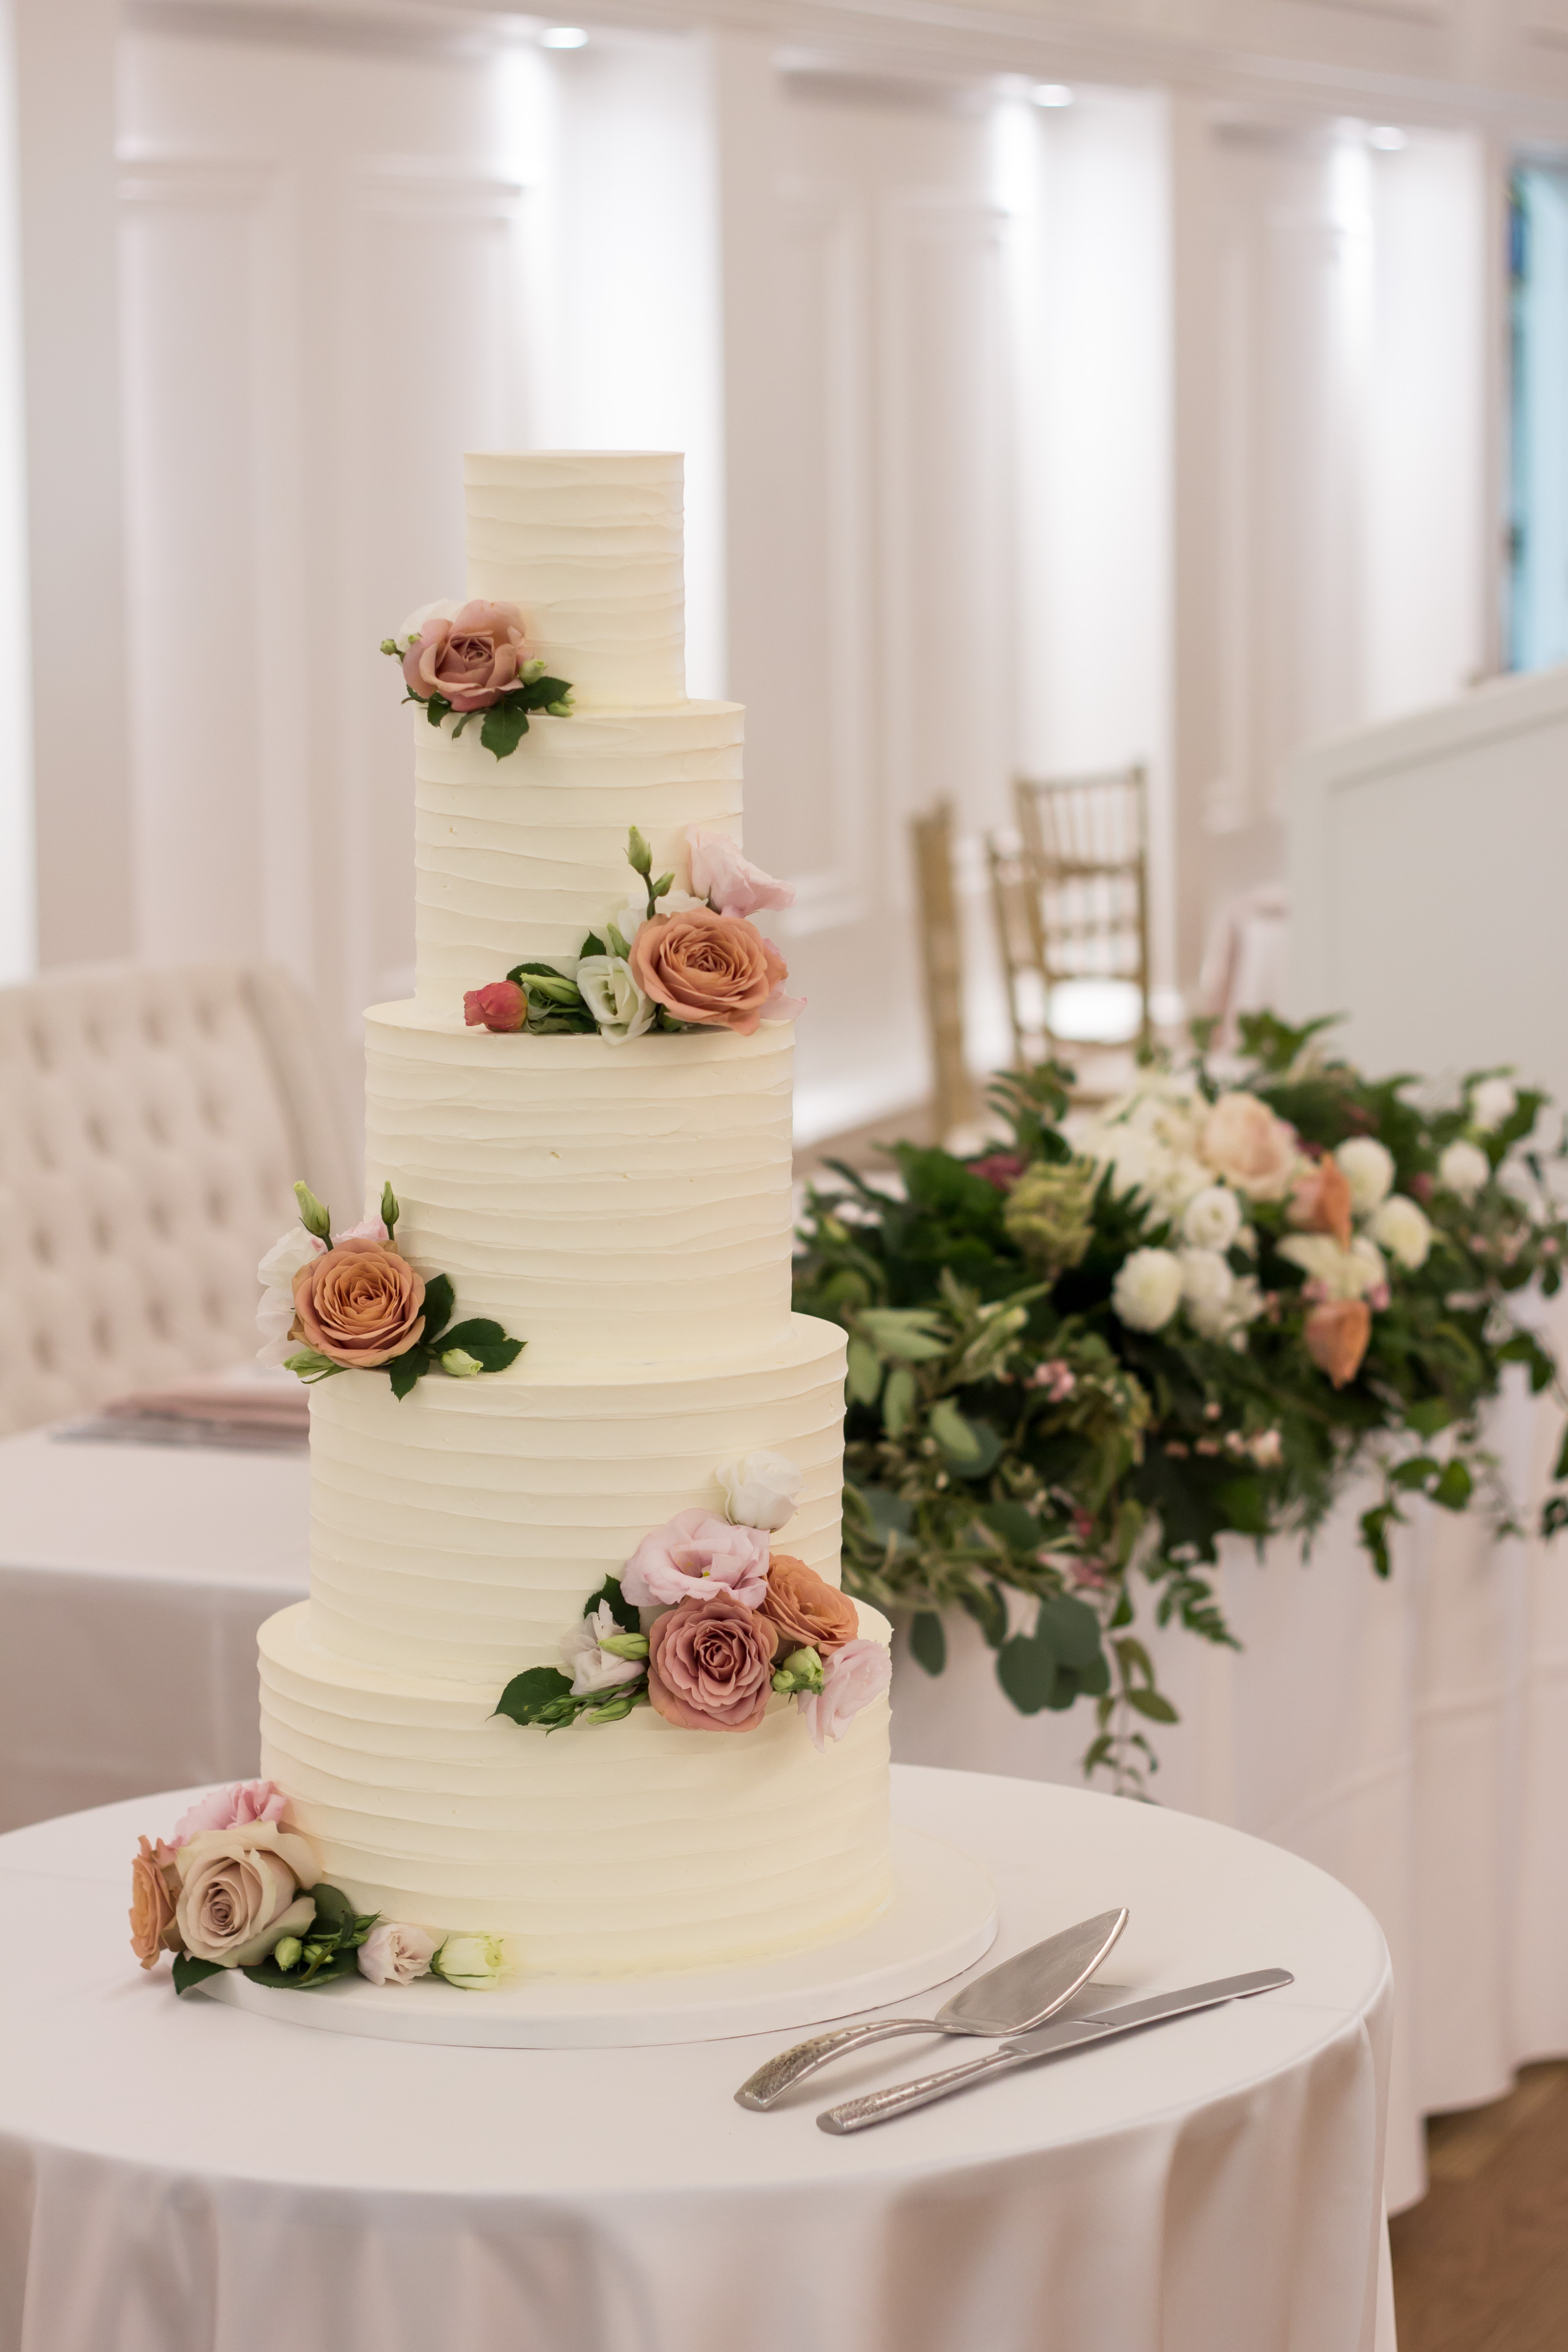 5 Tier Buttercream, fresh flowers